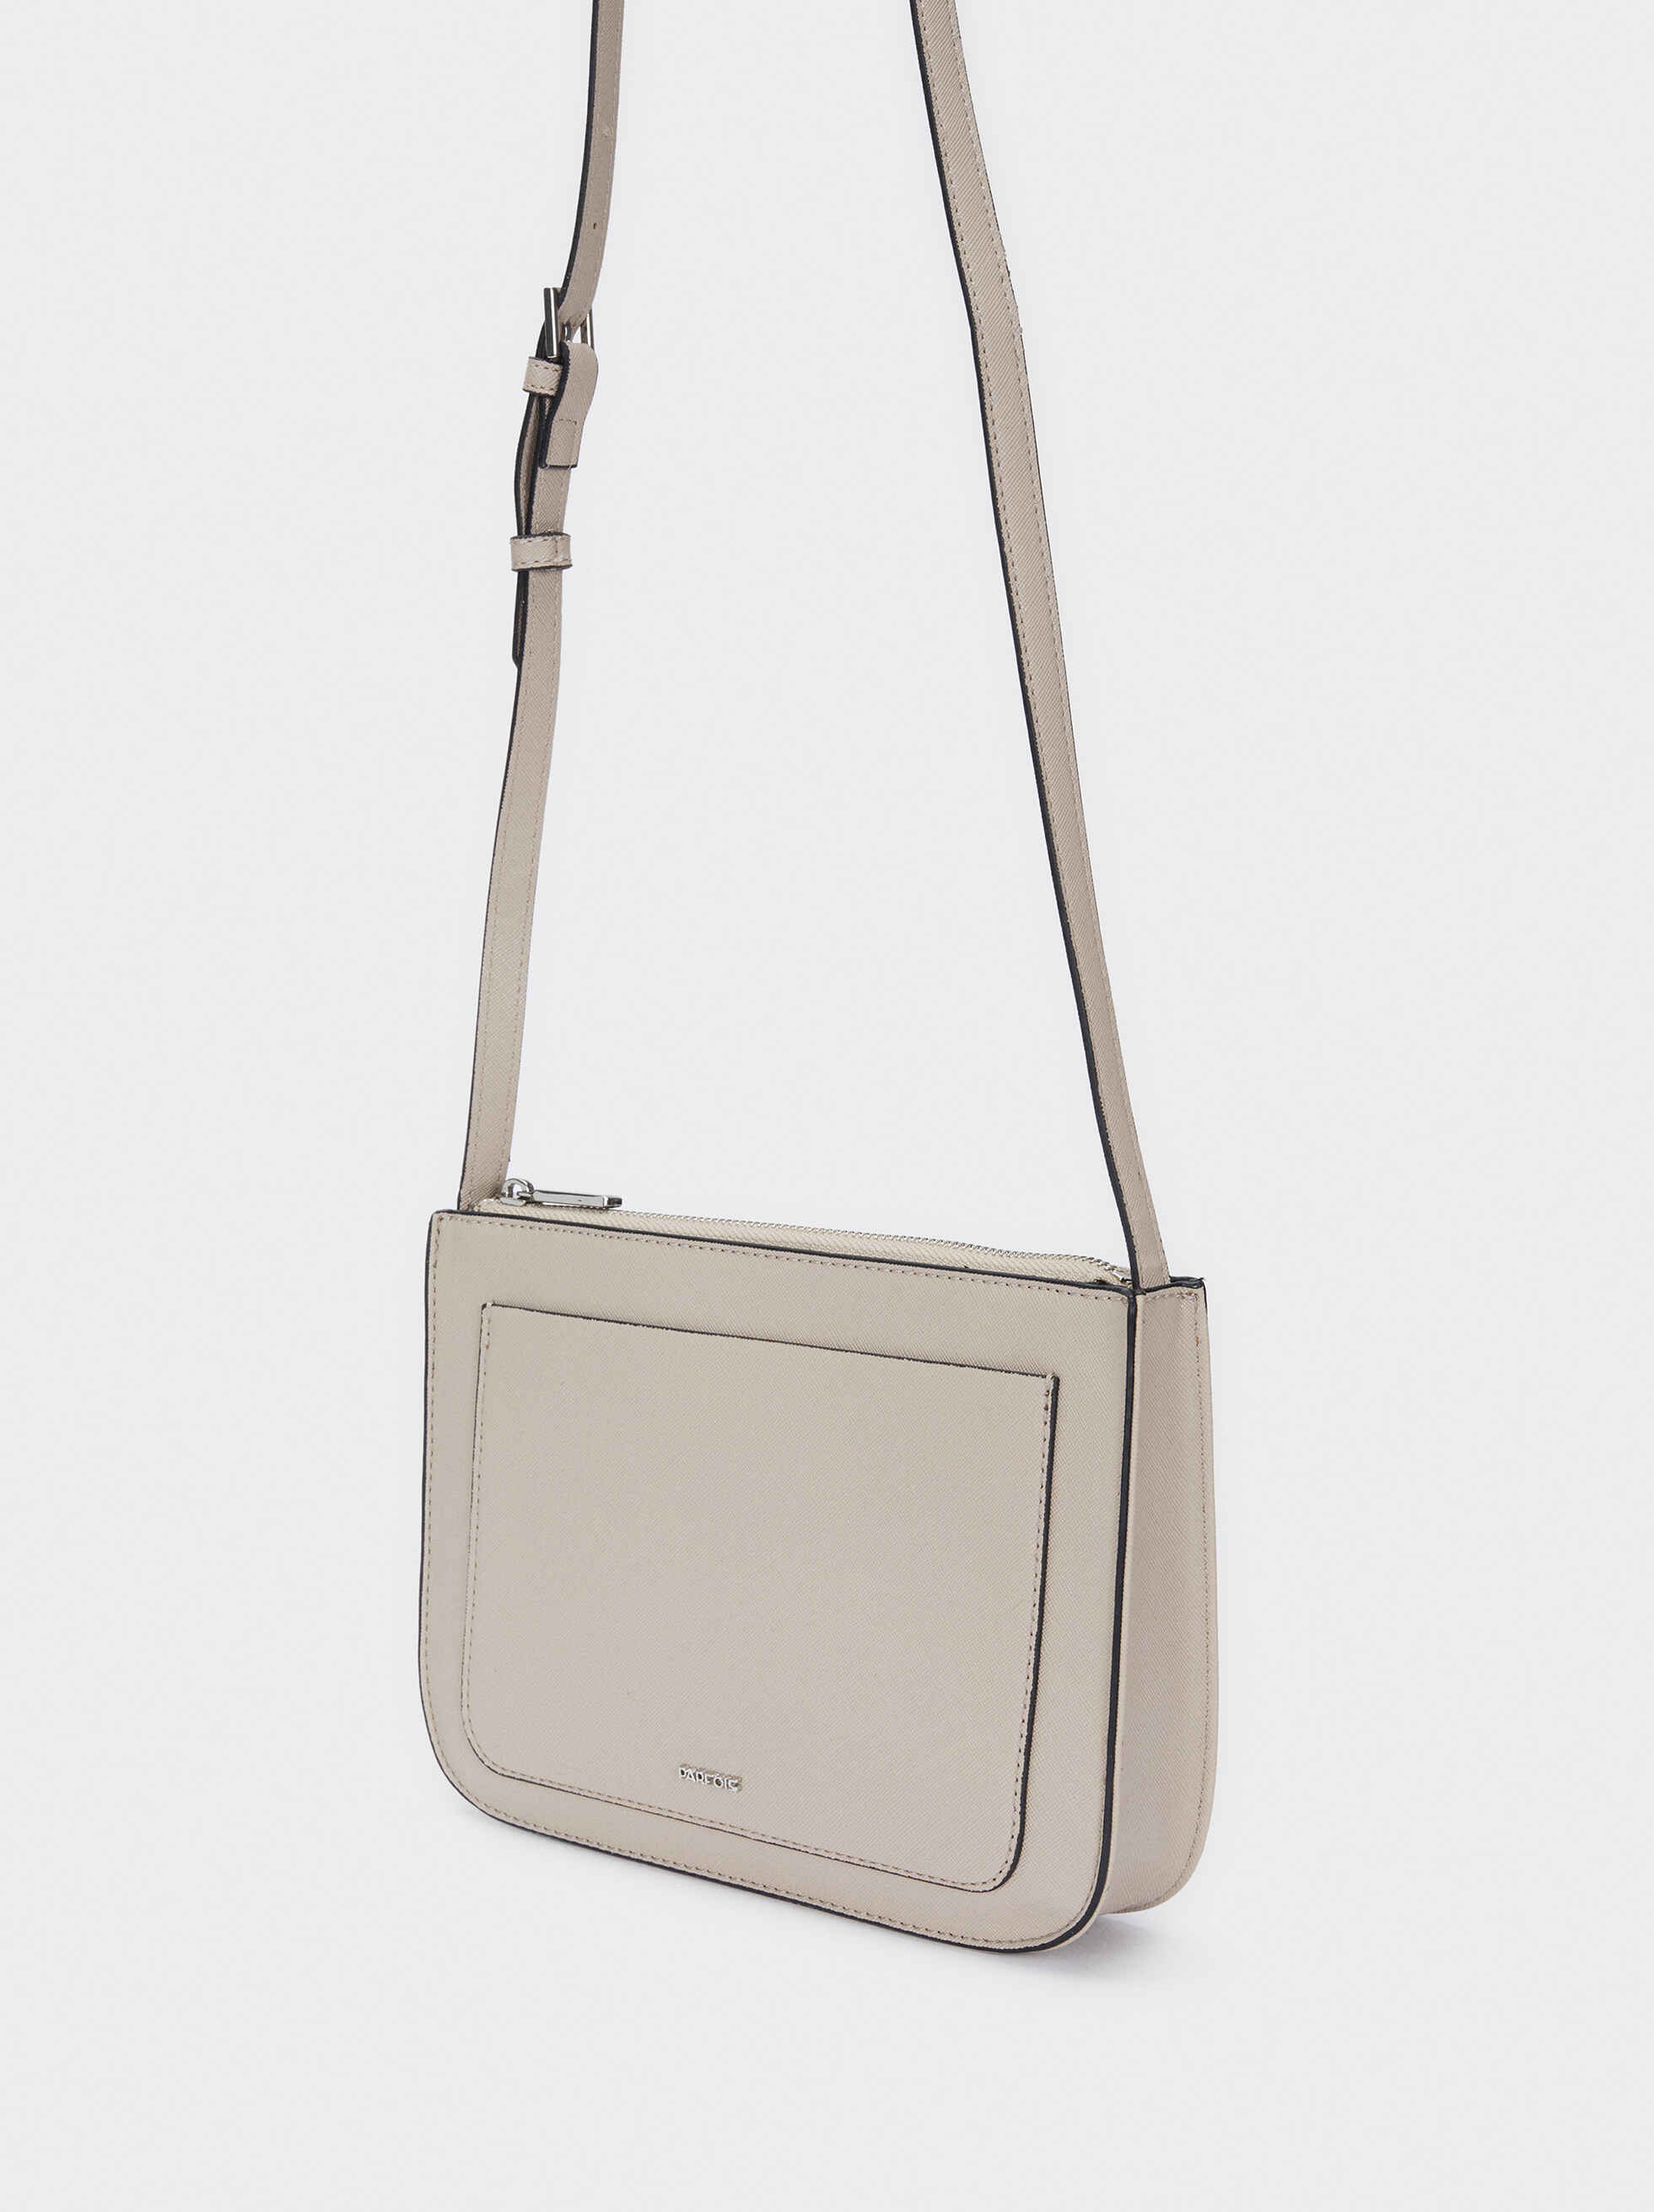 Crossbody Bag With Outer Pocket, Grey, hi-res